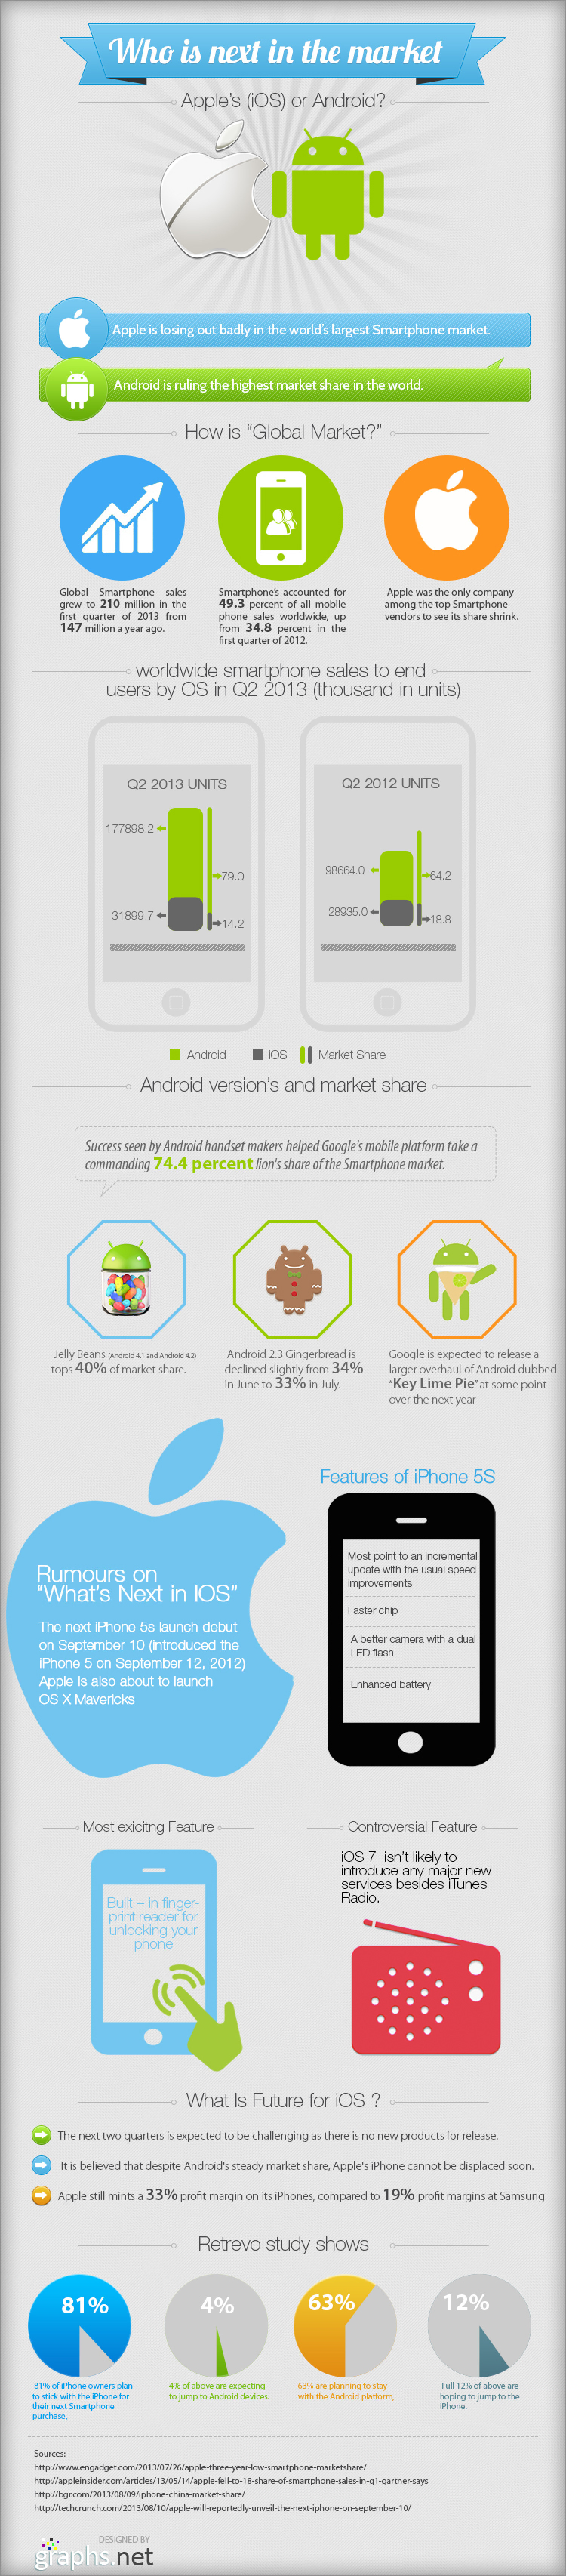 Who is Next in the Market: Apple or Android? Infographic